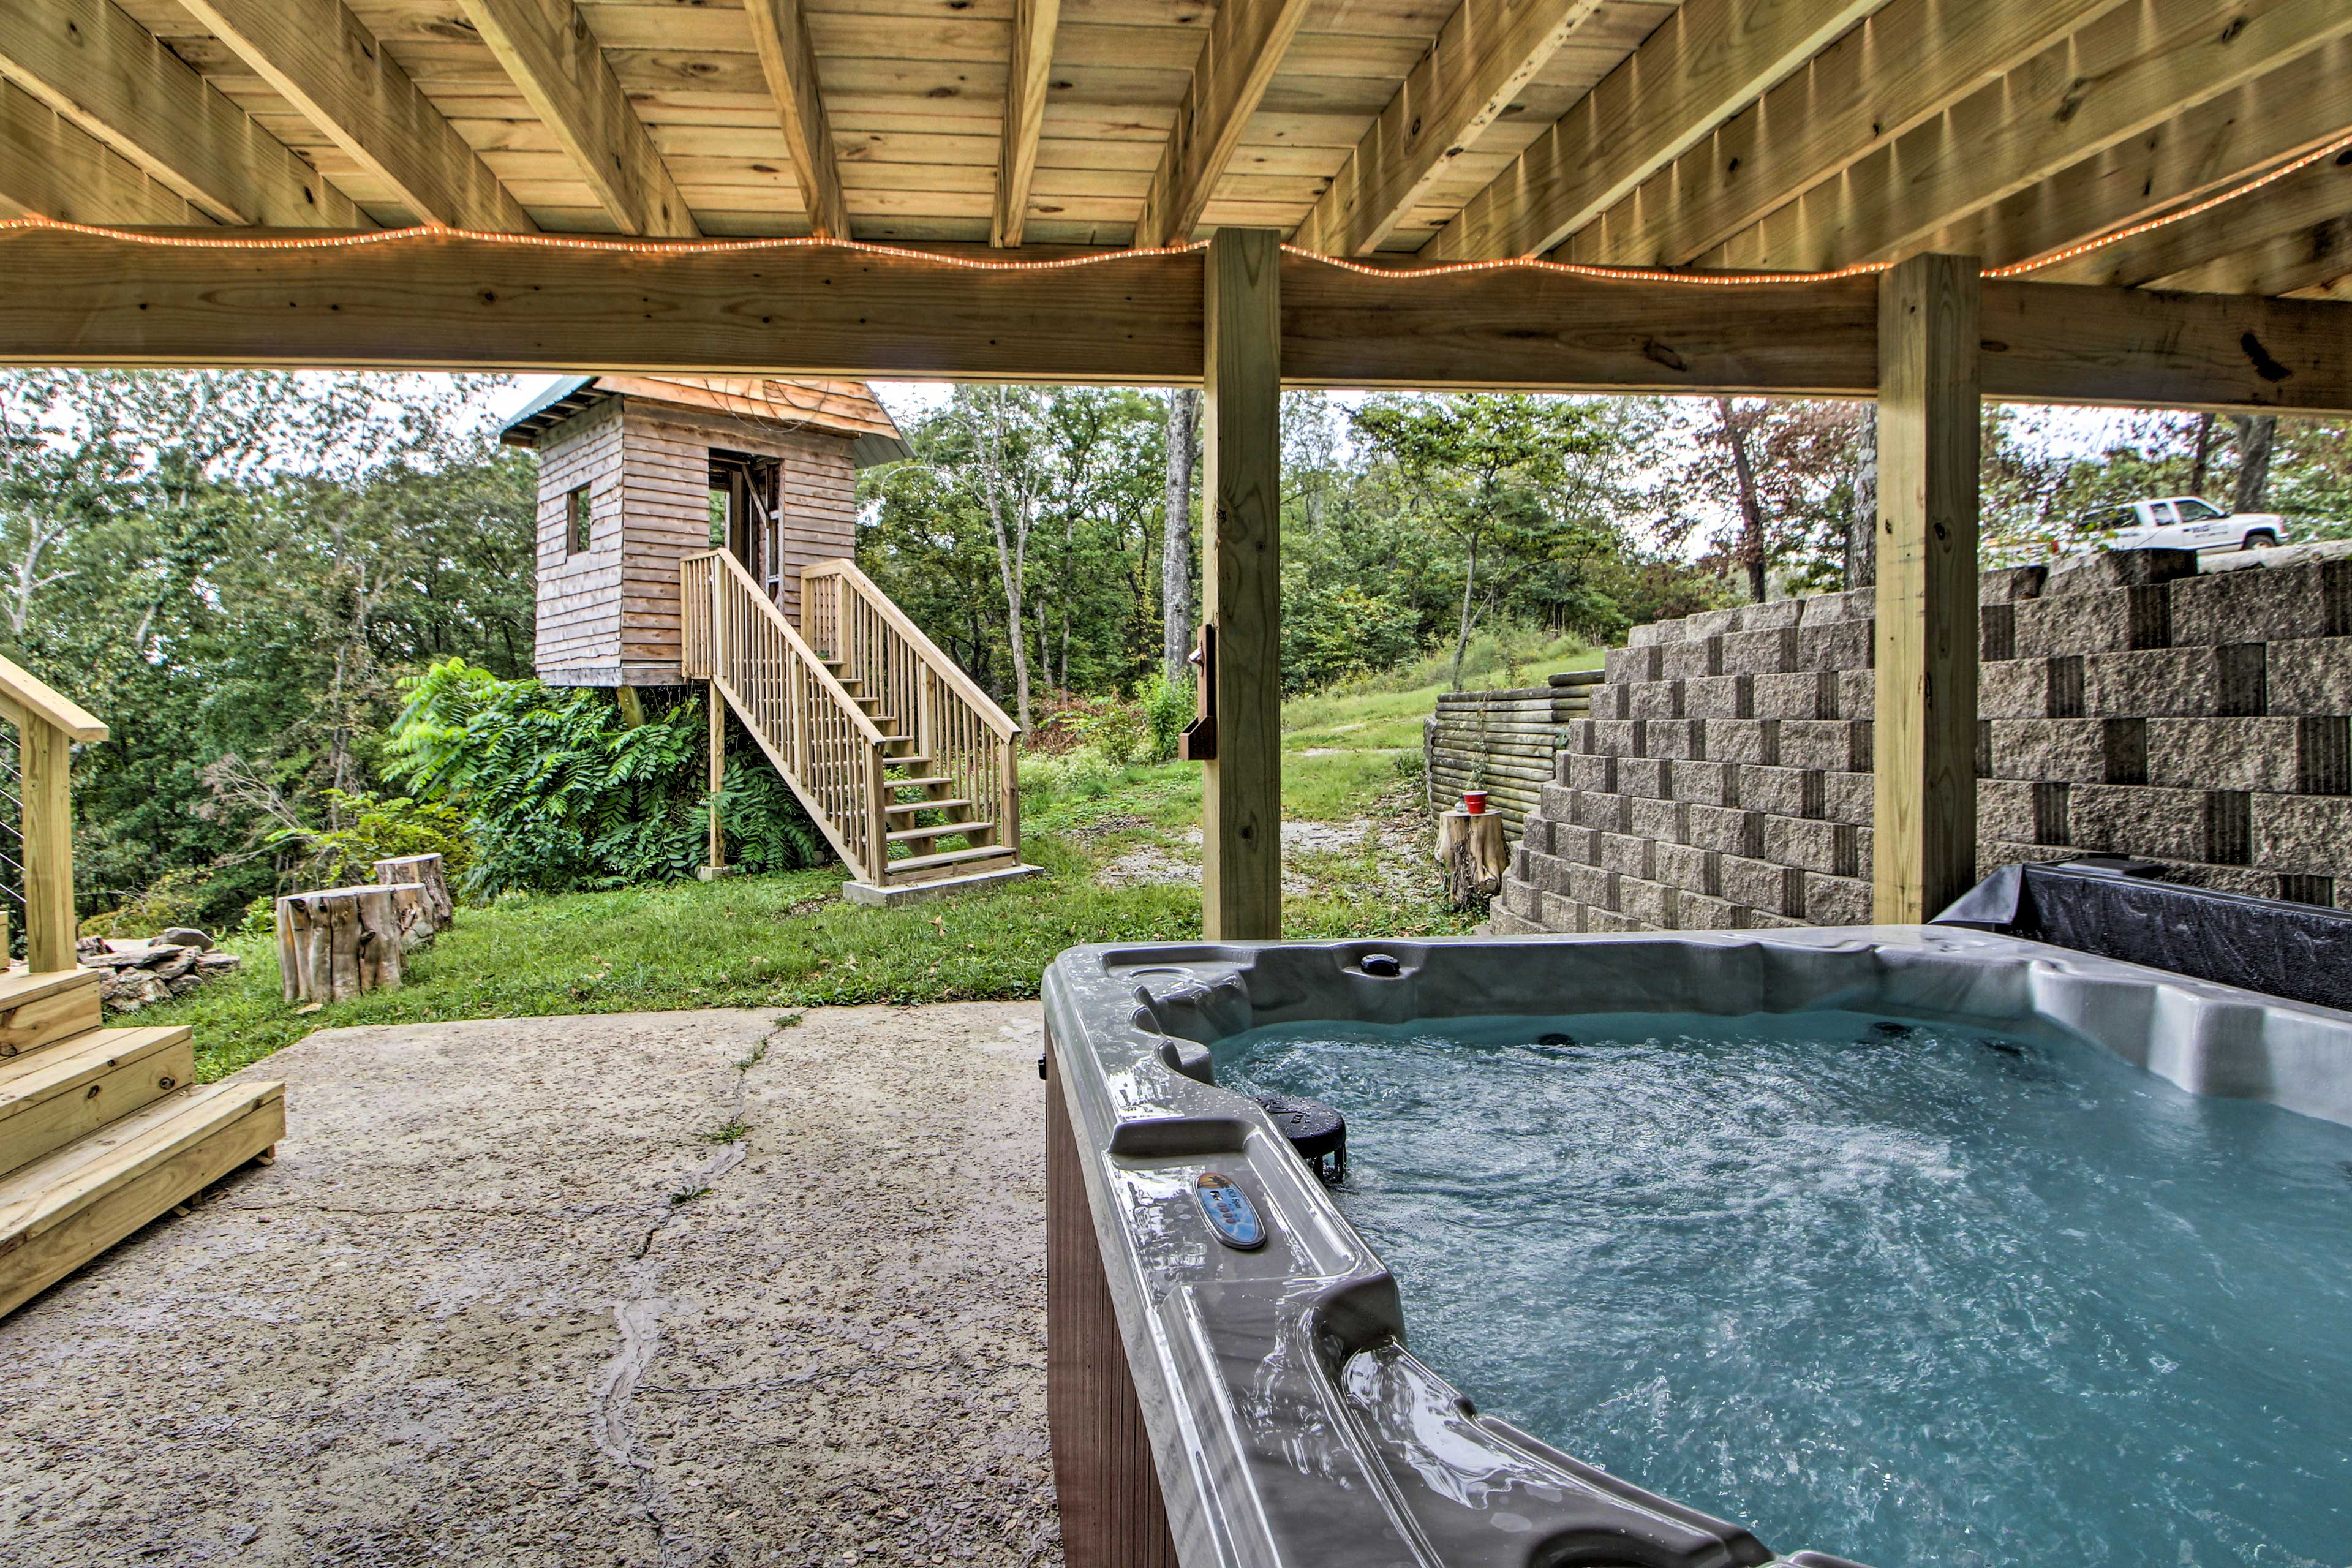 There's a brand-new hot tub that's perfect for soothing sore muscles!